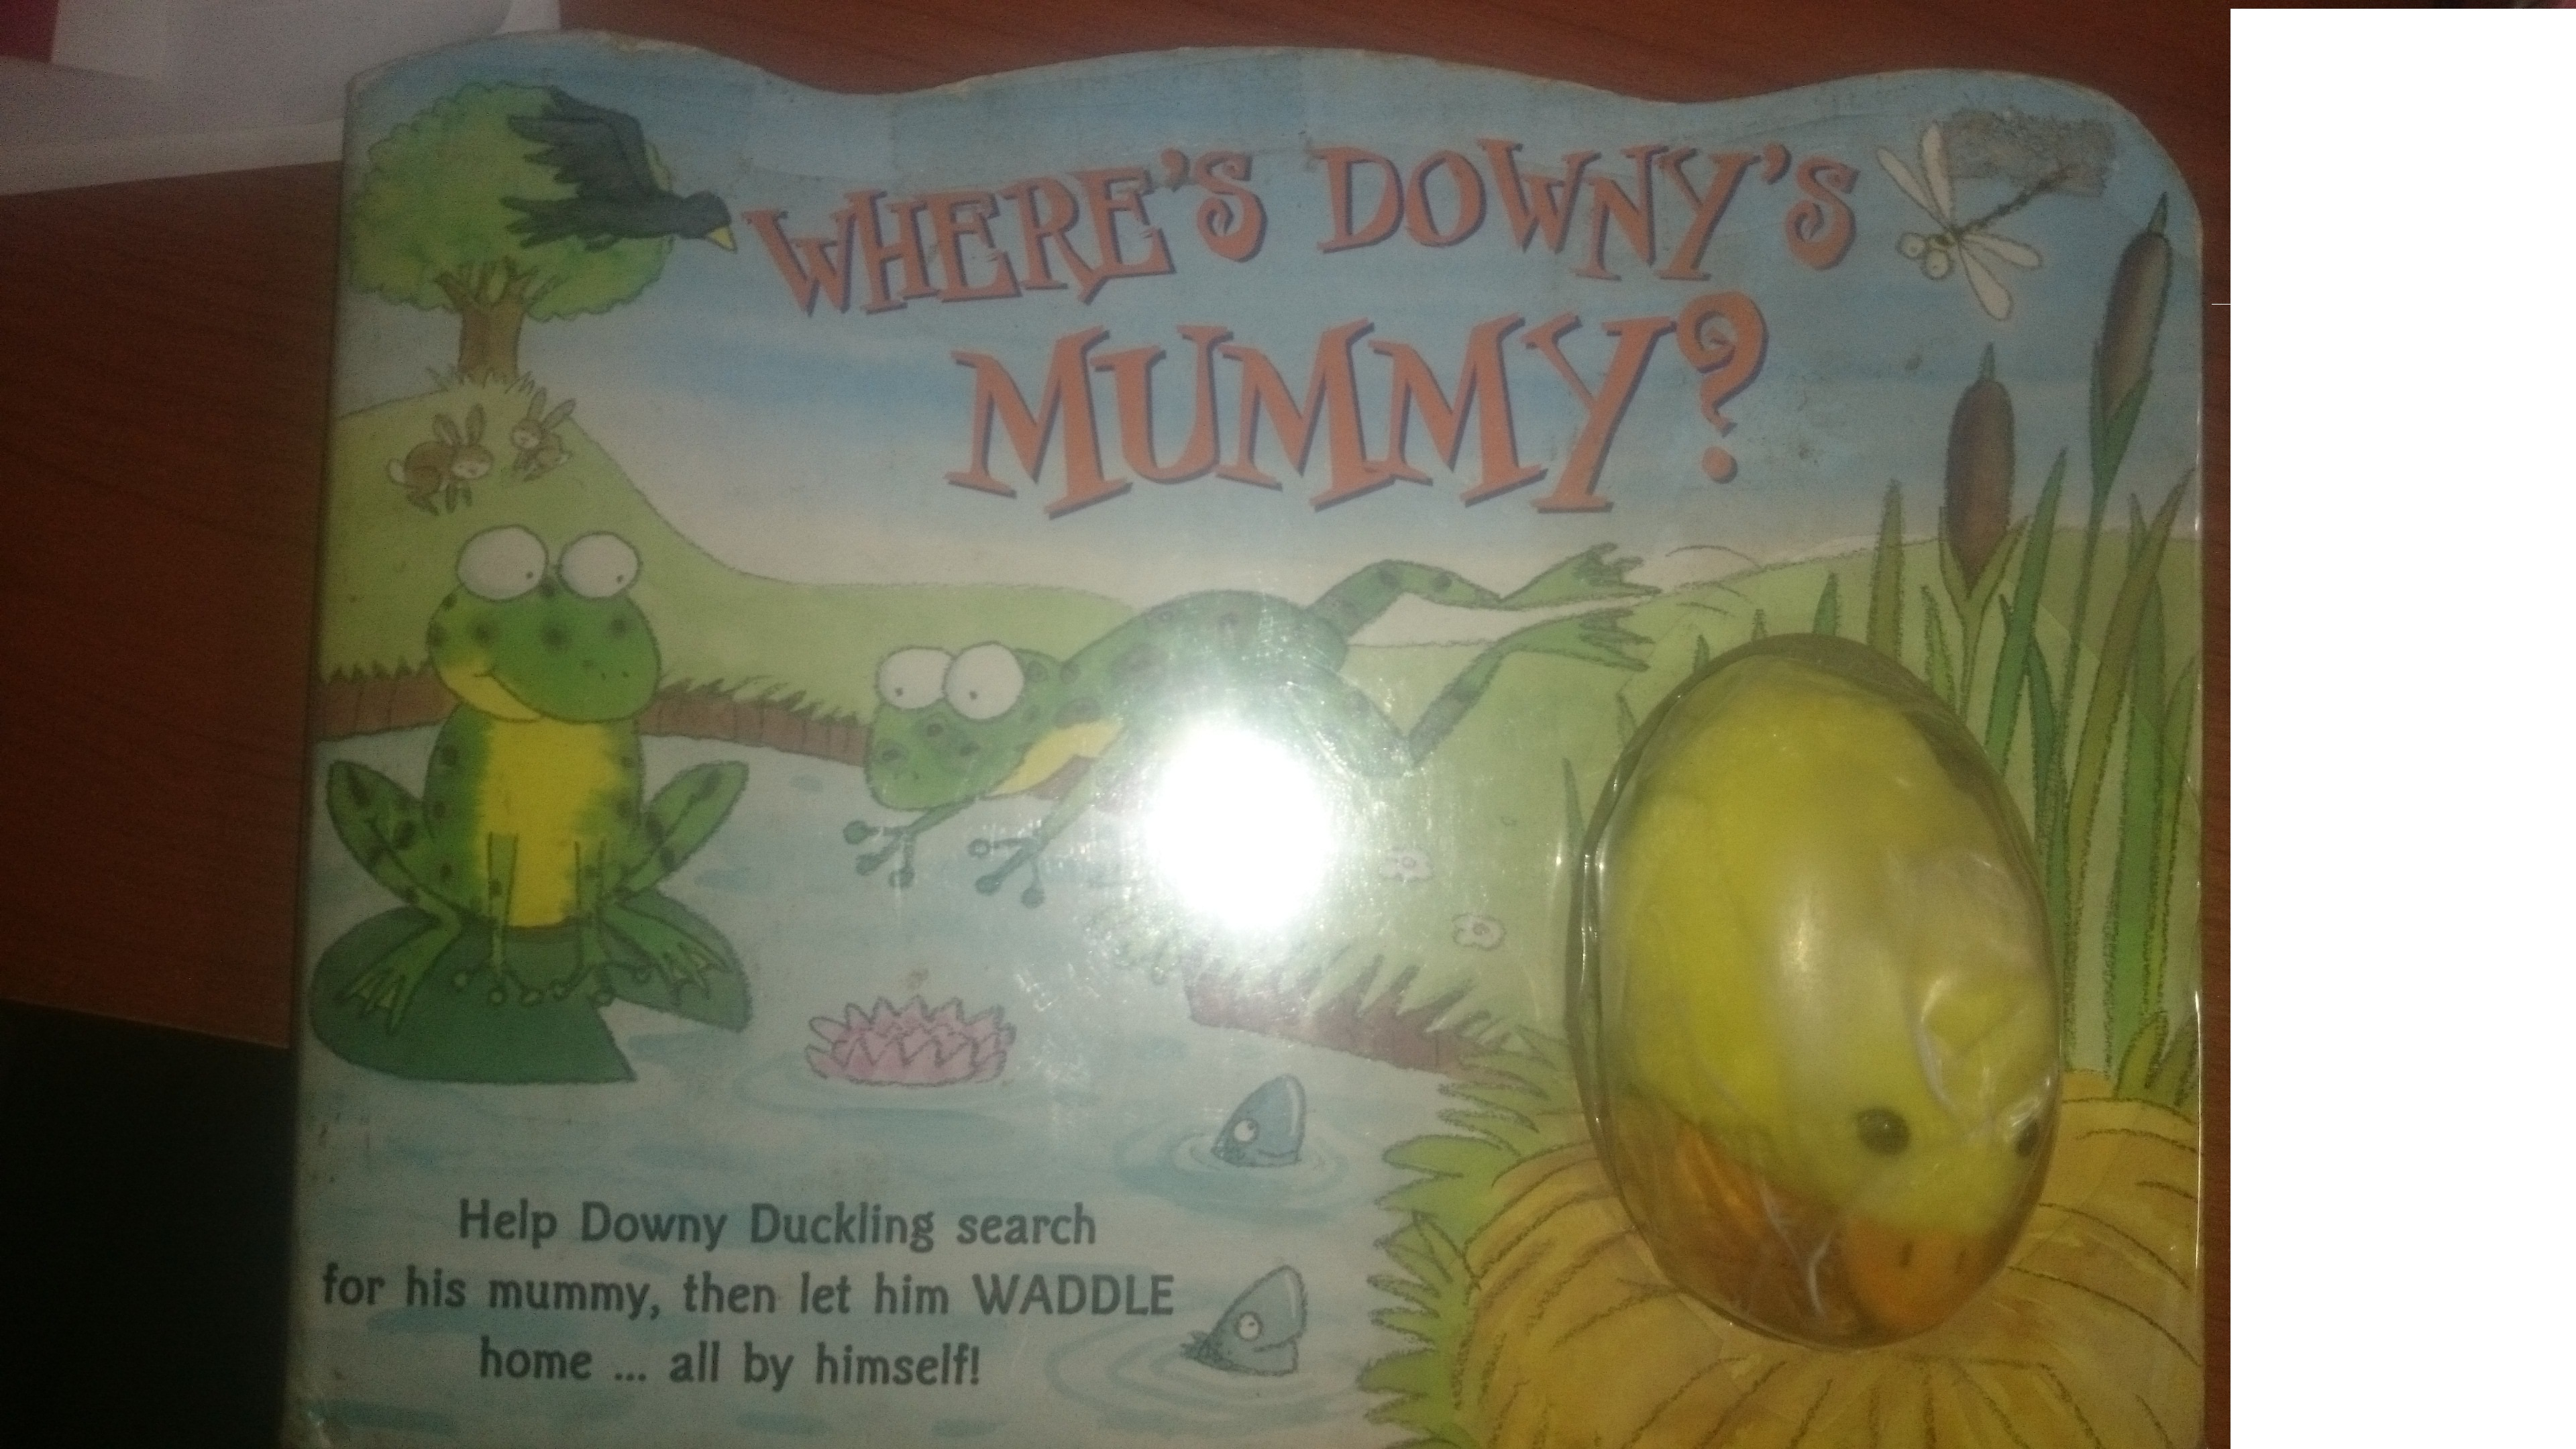 Where's Downy's Mummy?